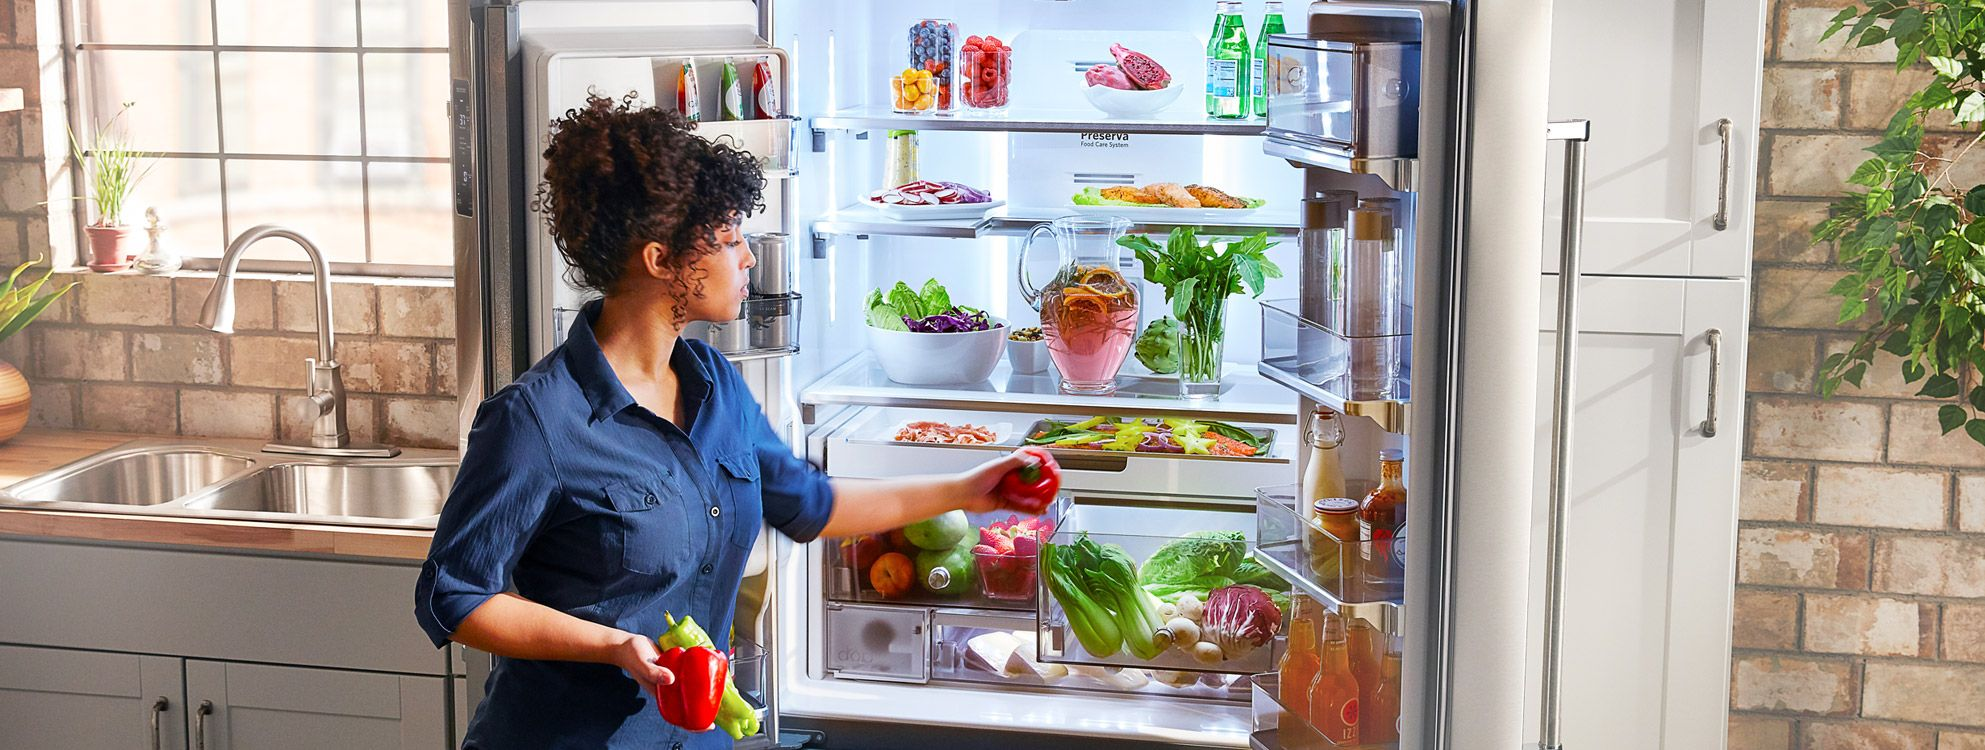 Woman reaches into opened KitchenAid refrigerator. Refrigerator is full of beverages, condiments, produce and cheeses.